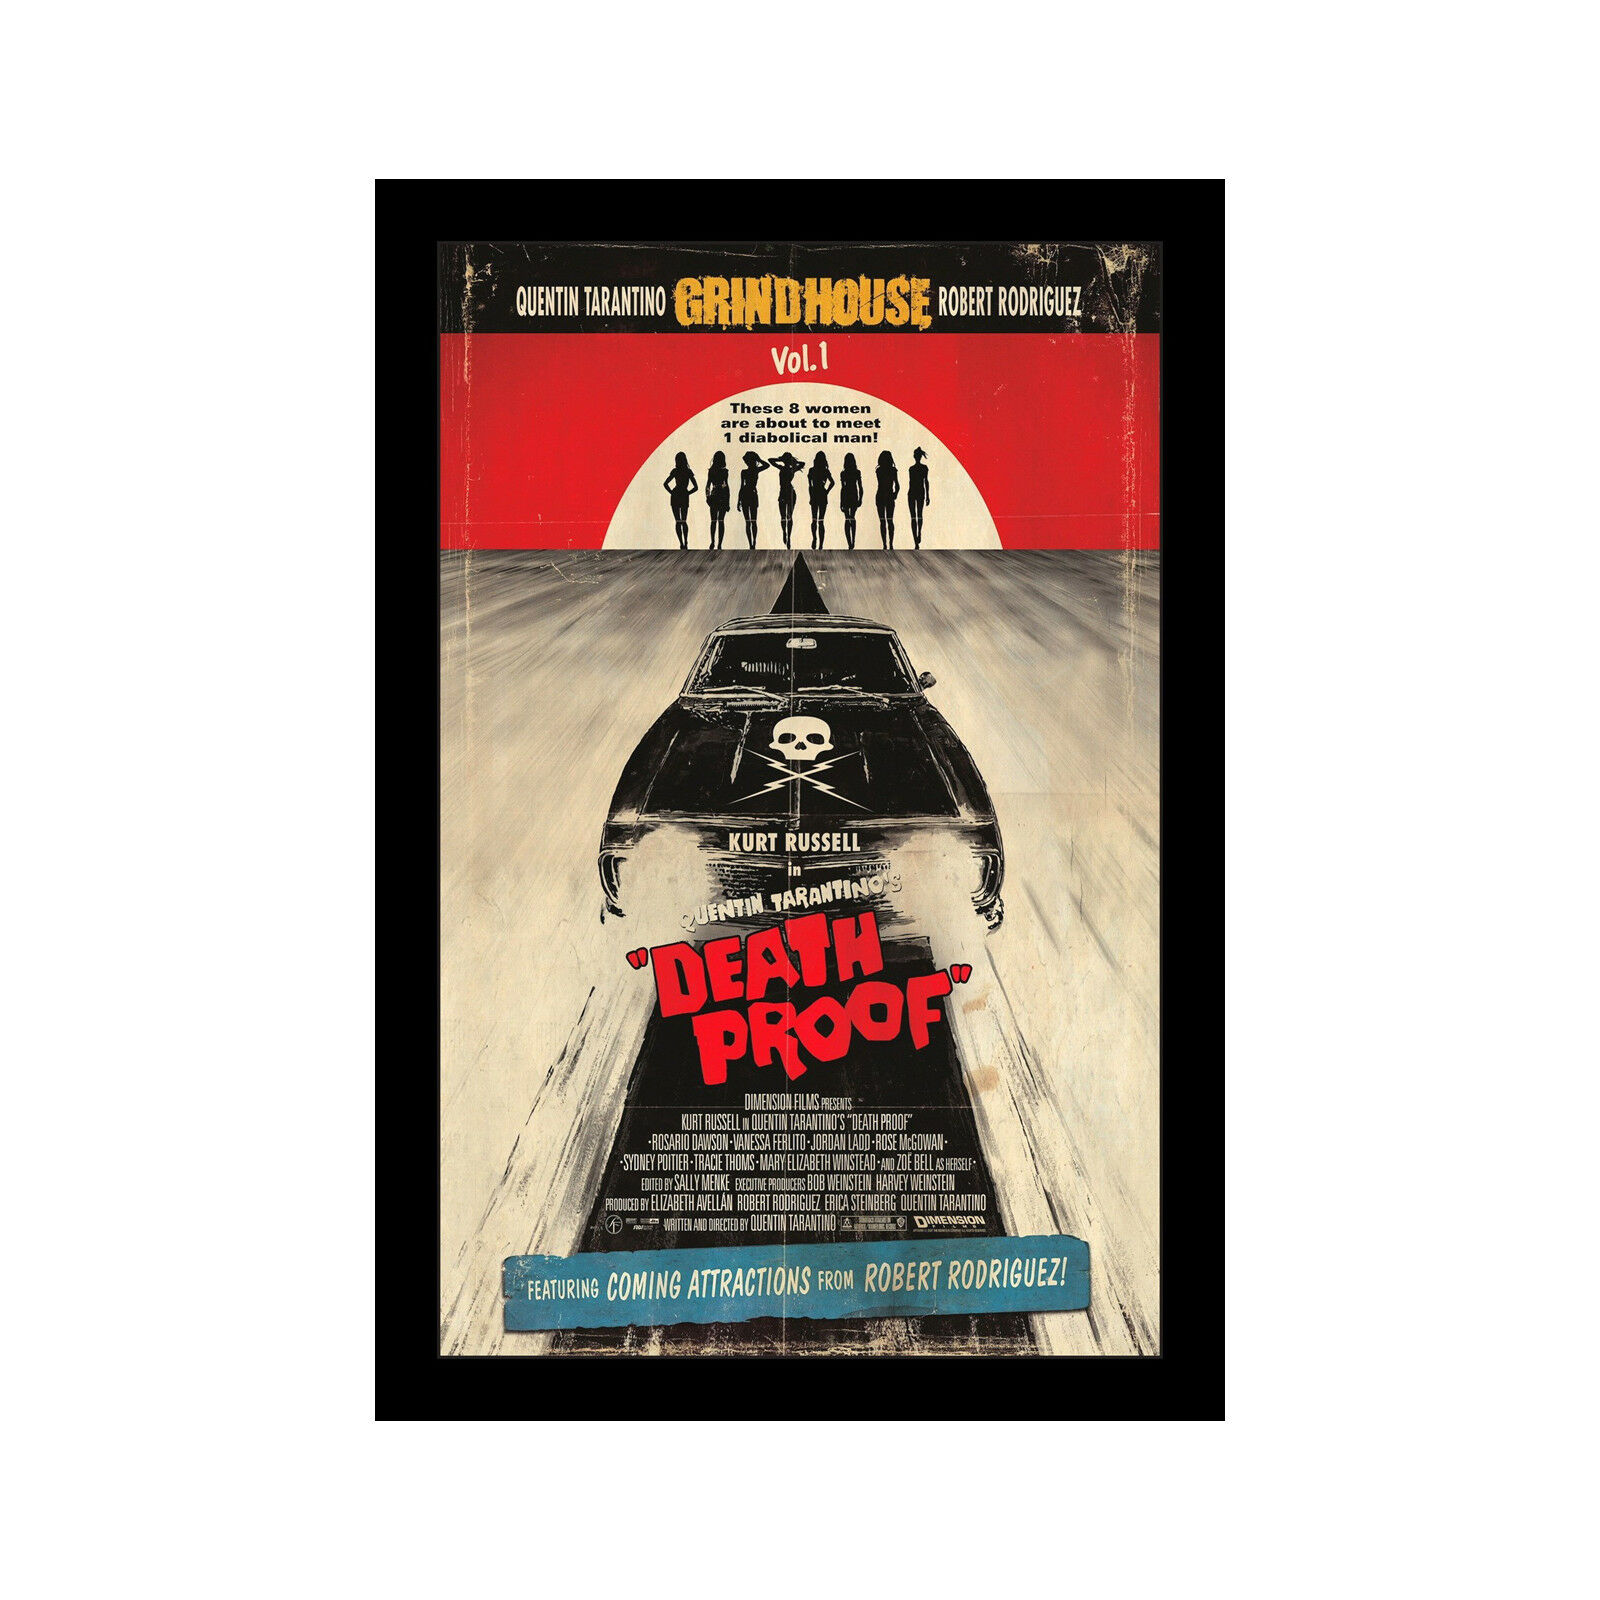 DEATH PROOF - 11x17 Framed Movie Poster by Wallspace